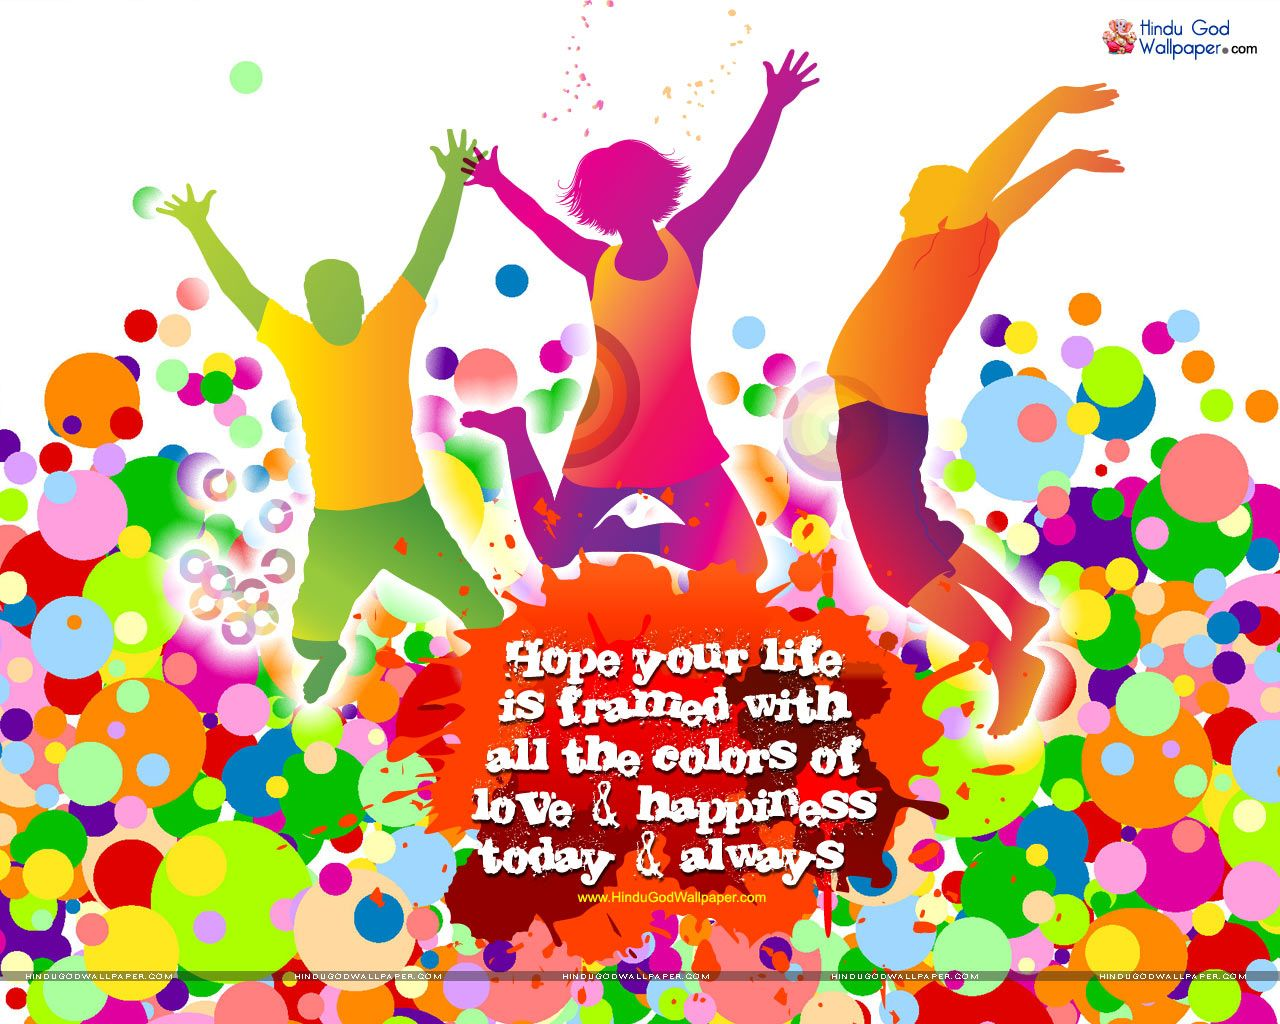 Holiwallpaper Happy Holi Wallpapers Download